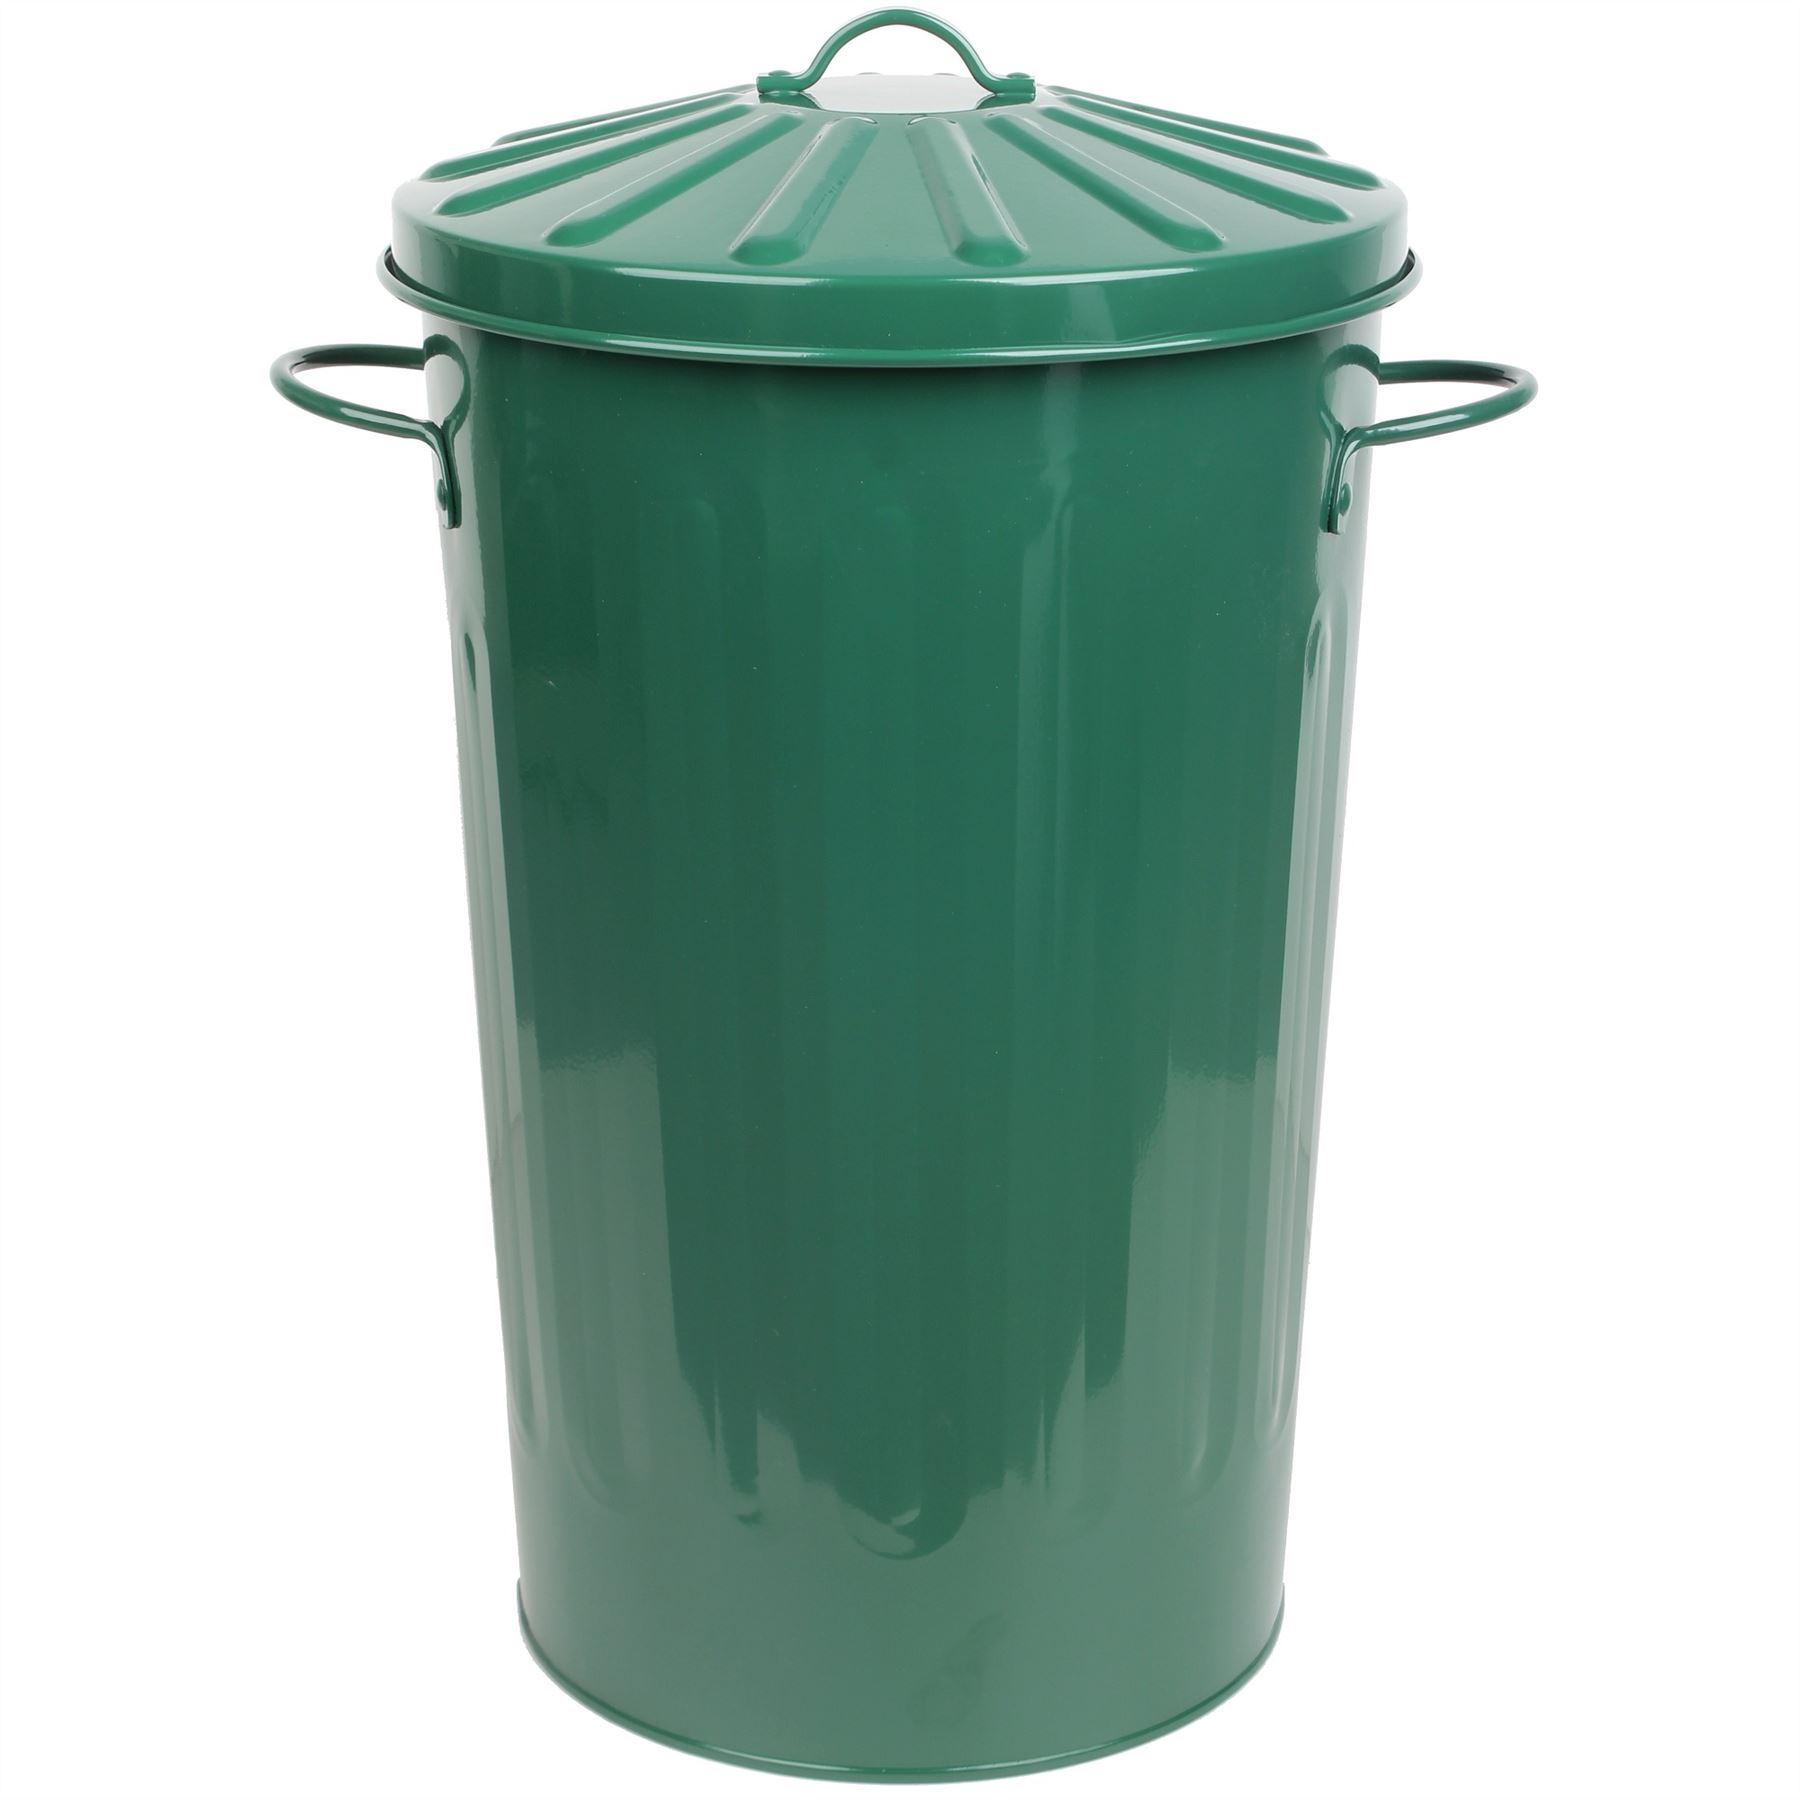 Bedroom Rubbish Bin